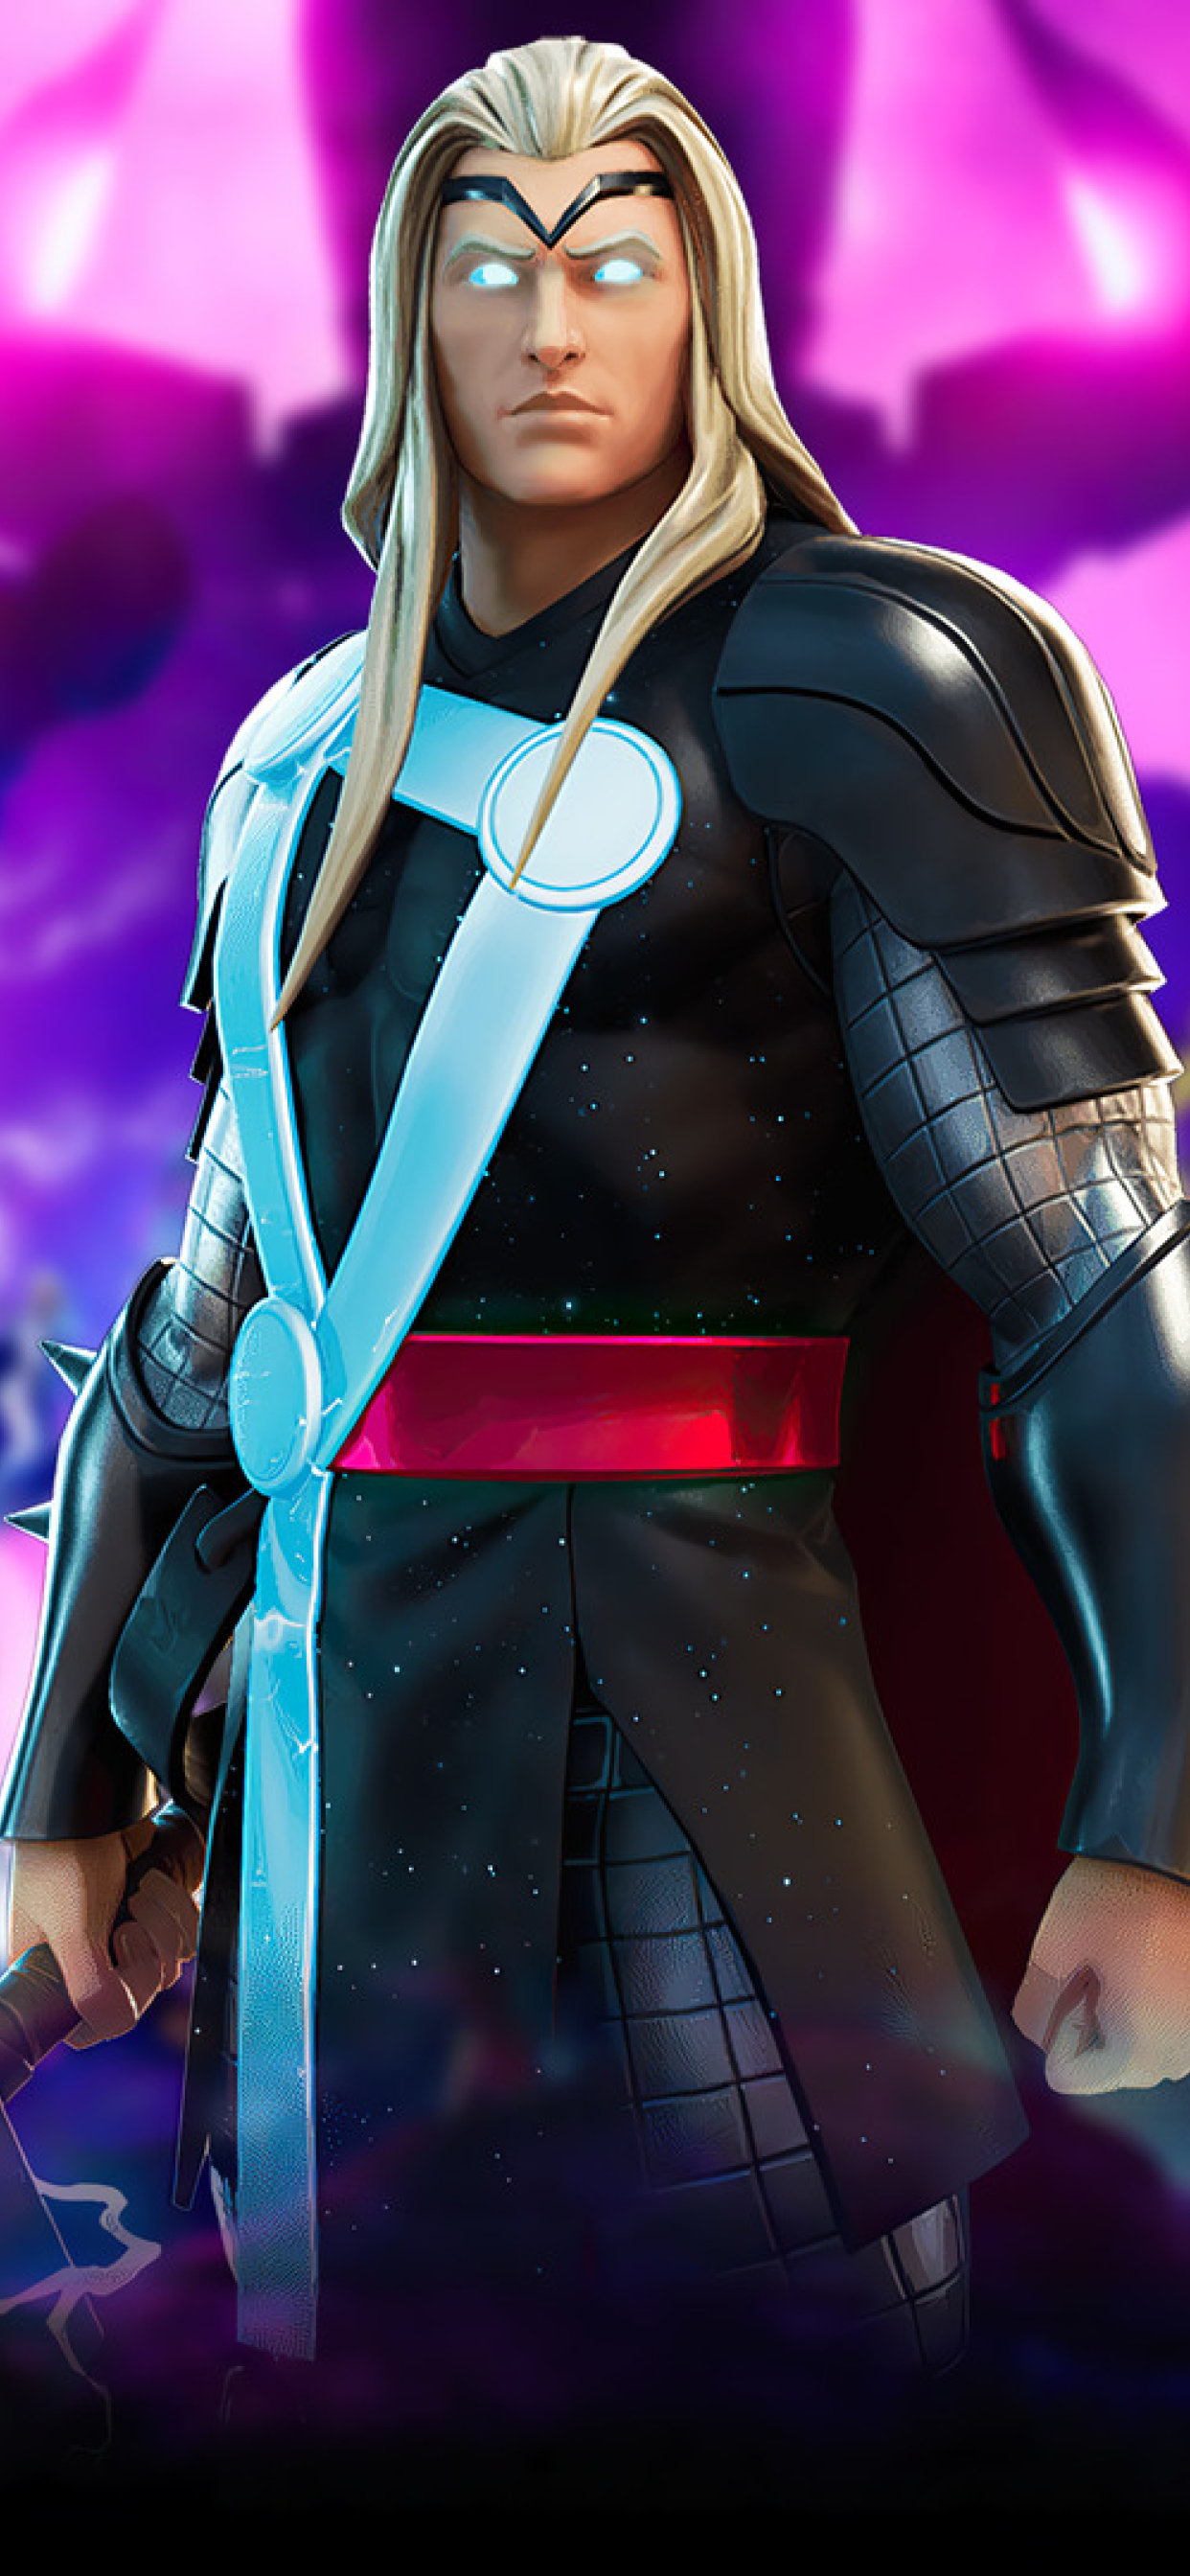 Marvel Thor Fortnite Wallpaper in 1242x2688 Resolution